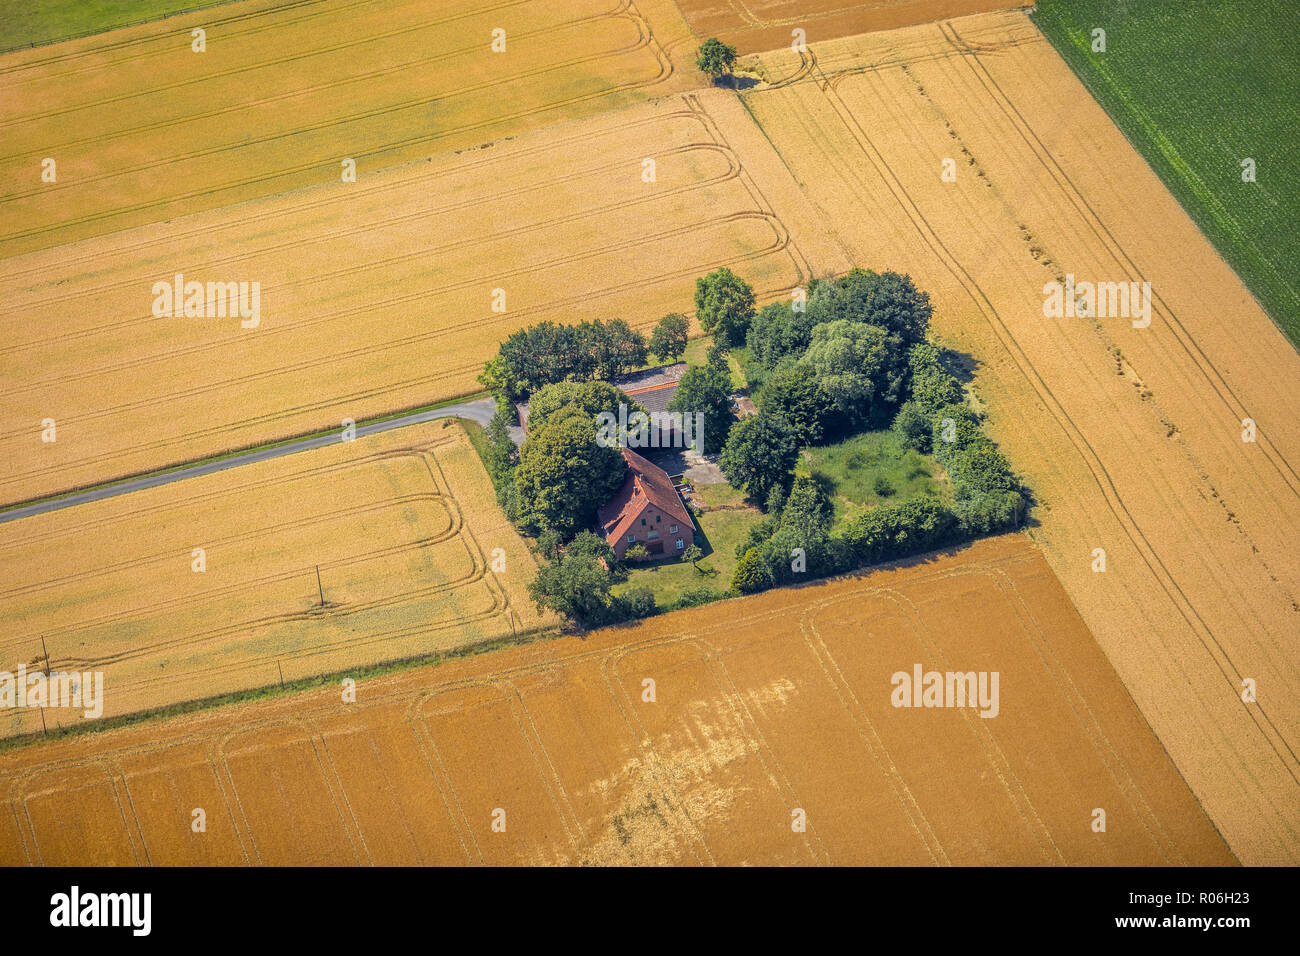 Aerial view, Farmhouse, Schirl, Ostbevern, Münsterland, North Rhine-Westphalia, Germany, Europe, DEU, birds-eyes view, aerial view, aerial photography - Stock Image